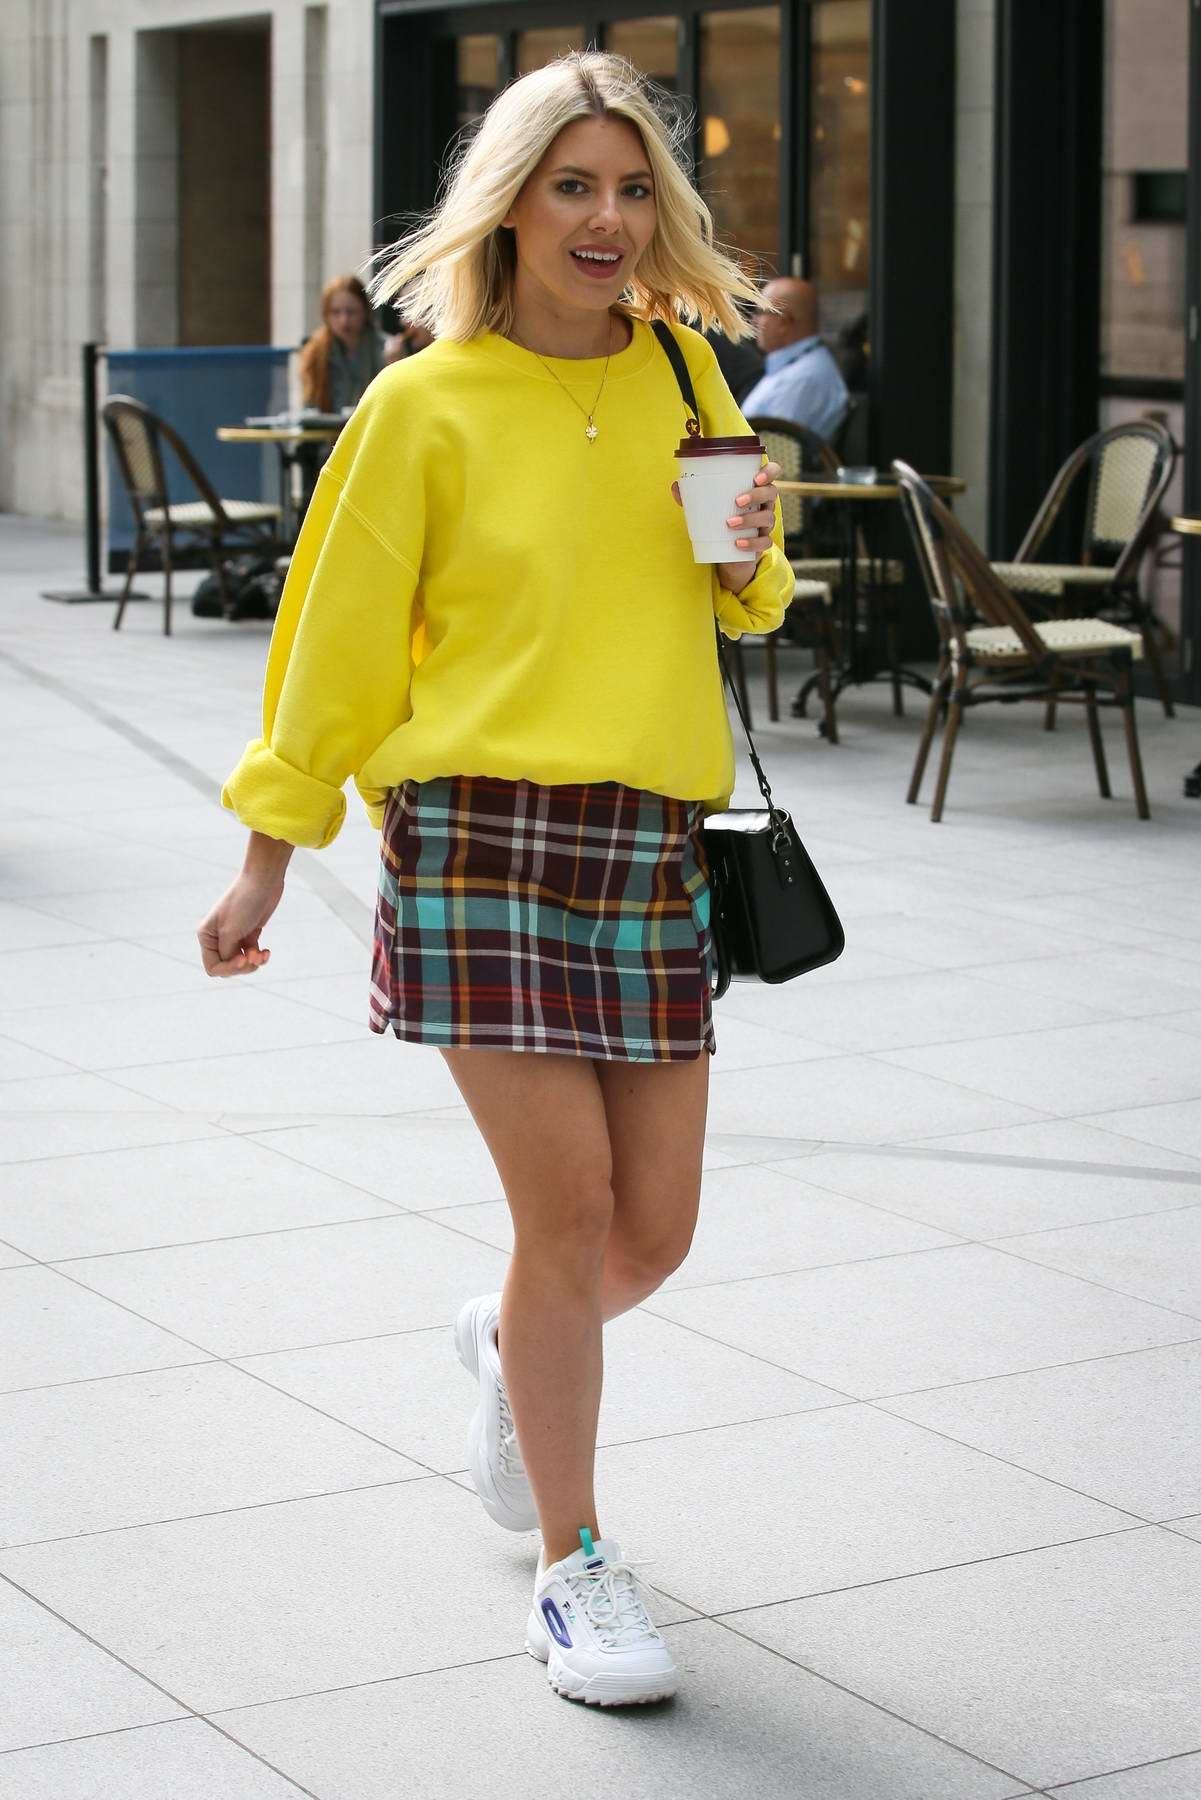 Mollie King wears a yellow sweater and a plaid mini skirt as she arrives at the BBC Radio One studios in London, UK